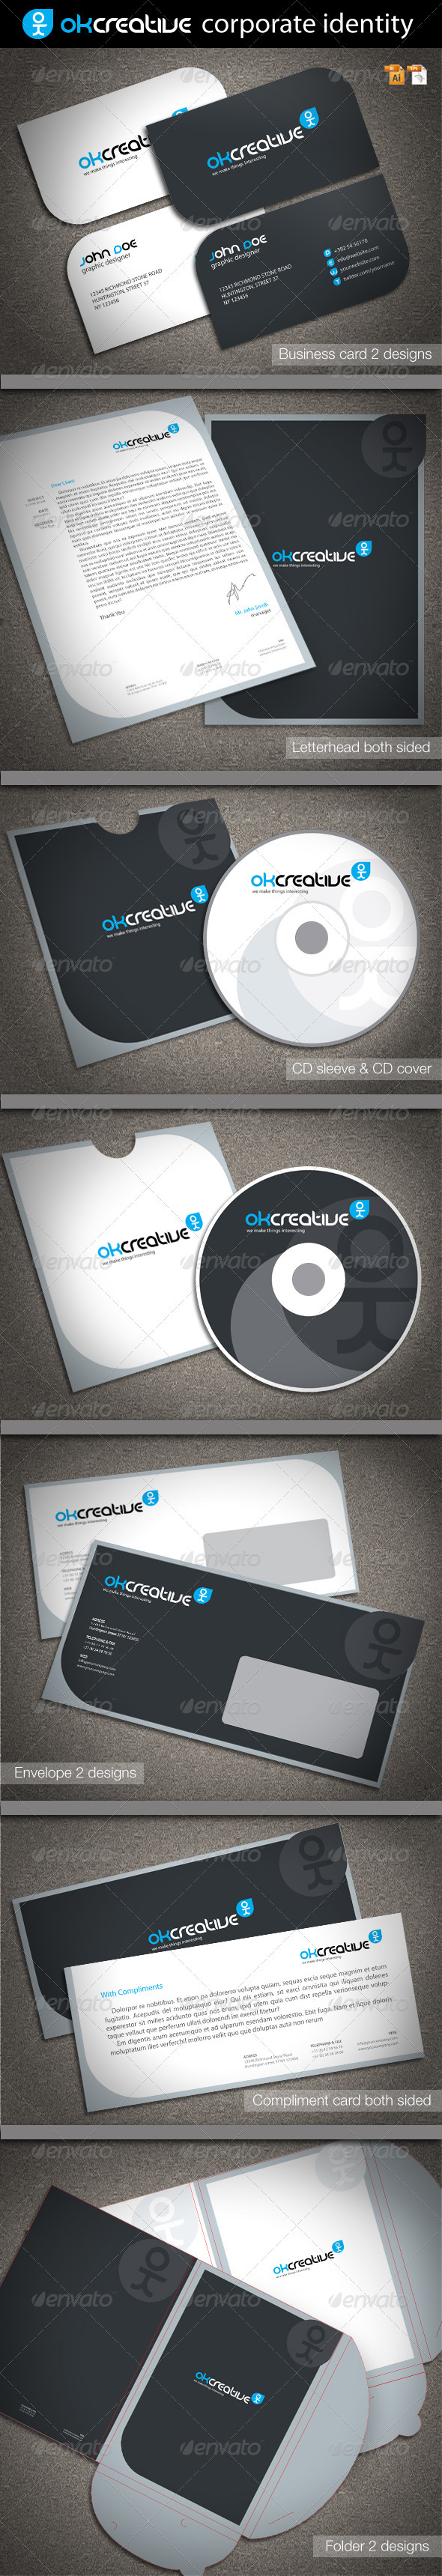 OK Creative Corporate Identity - Stationery Print Templates